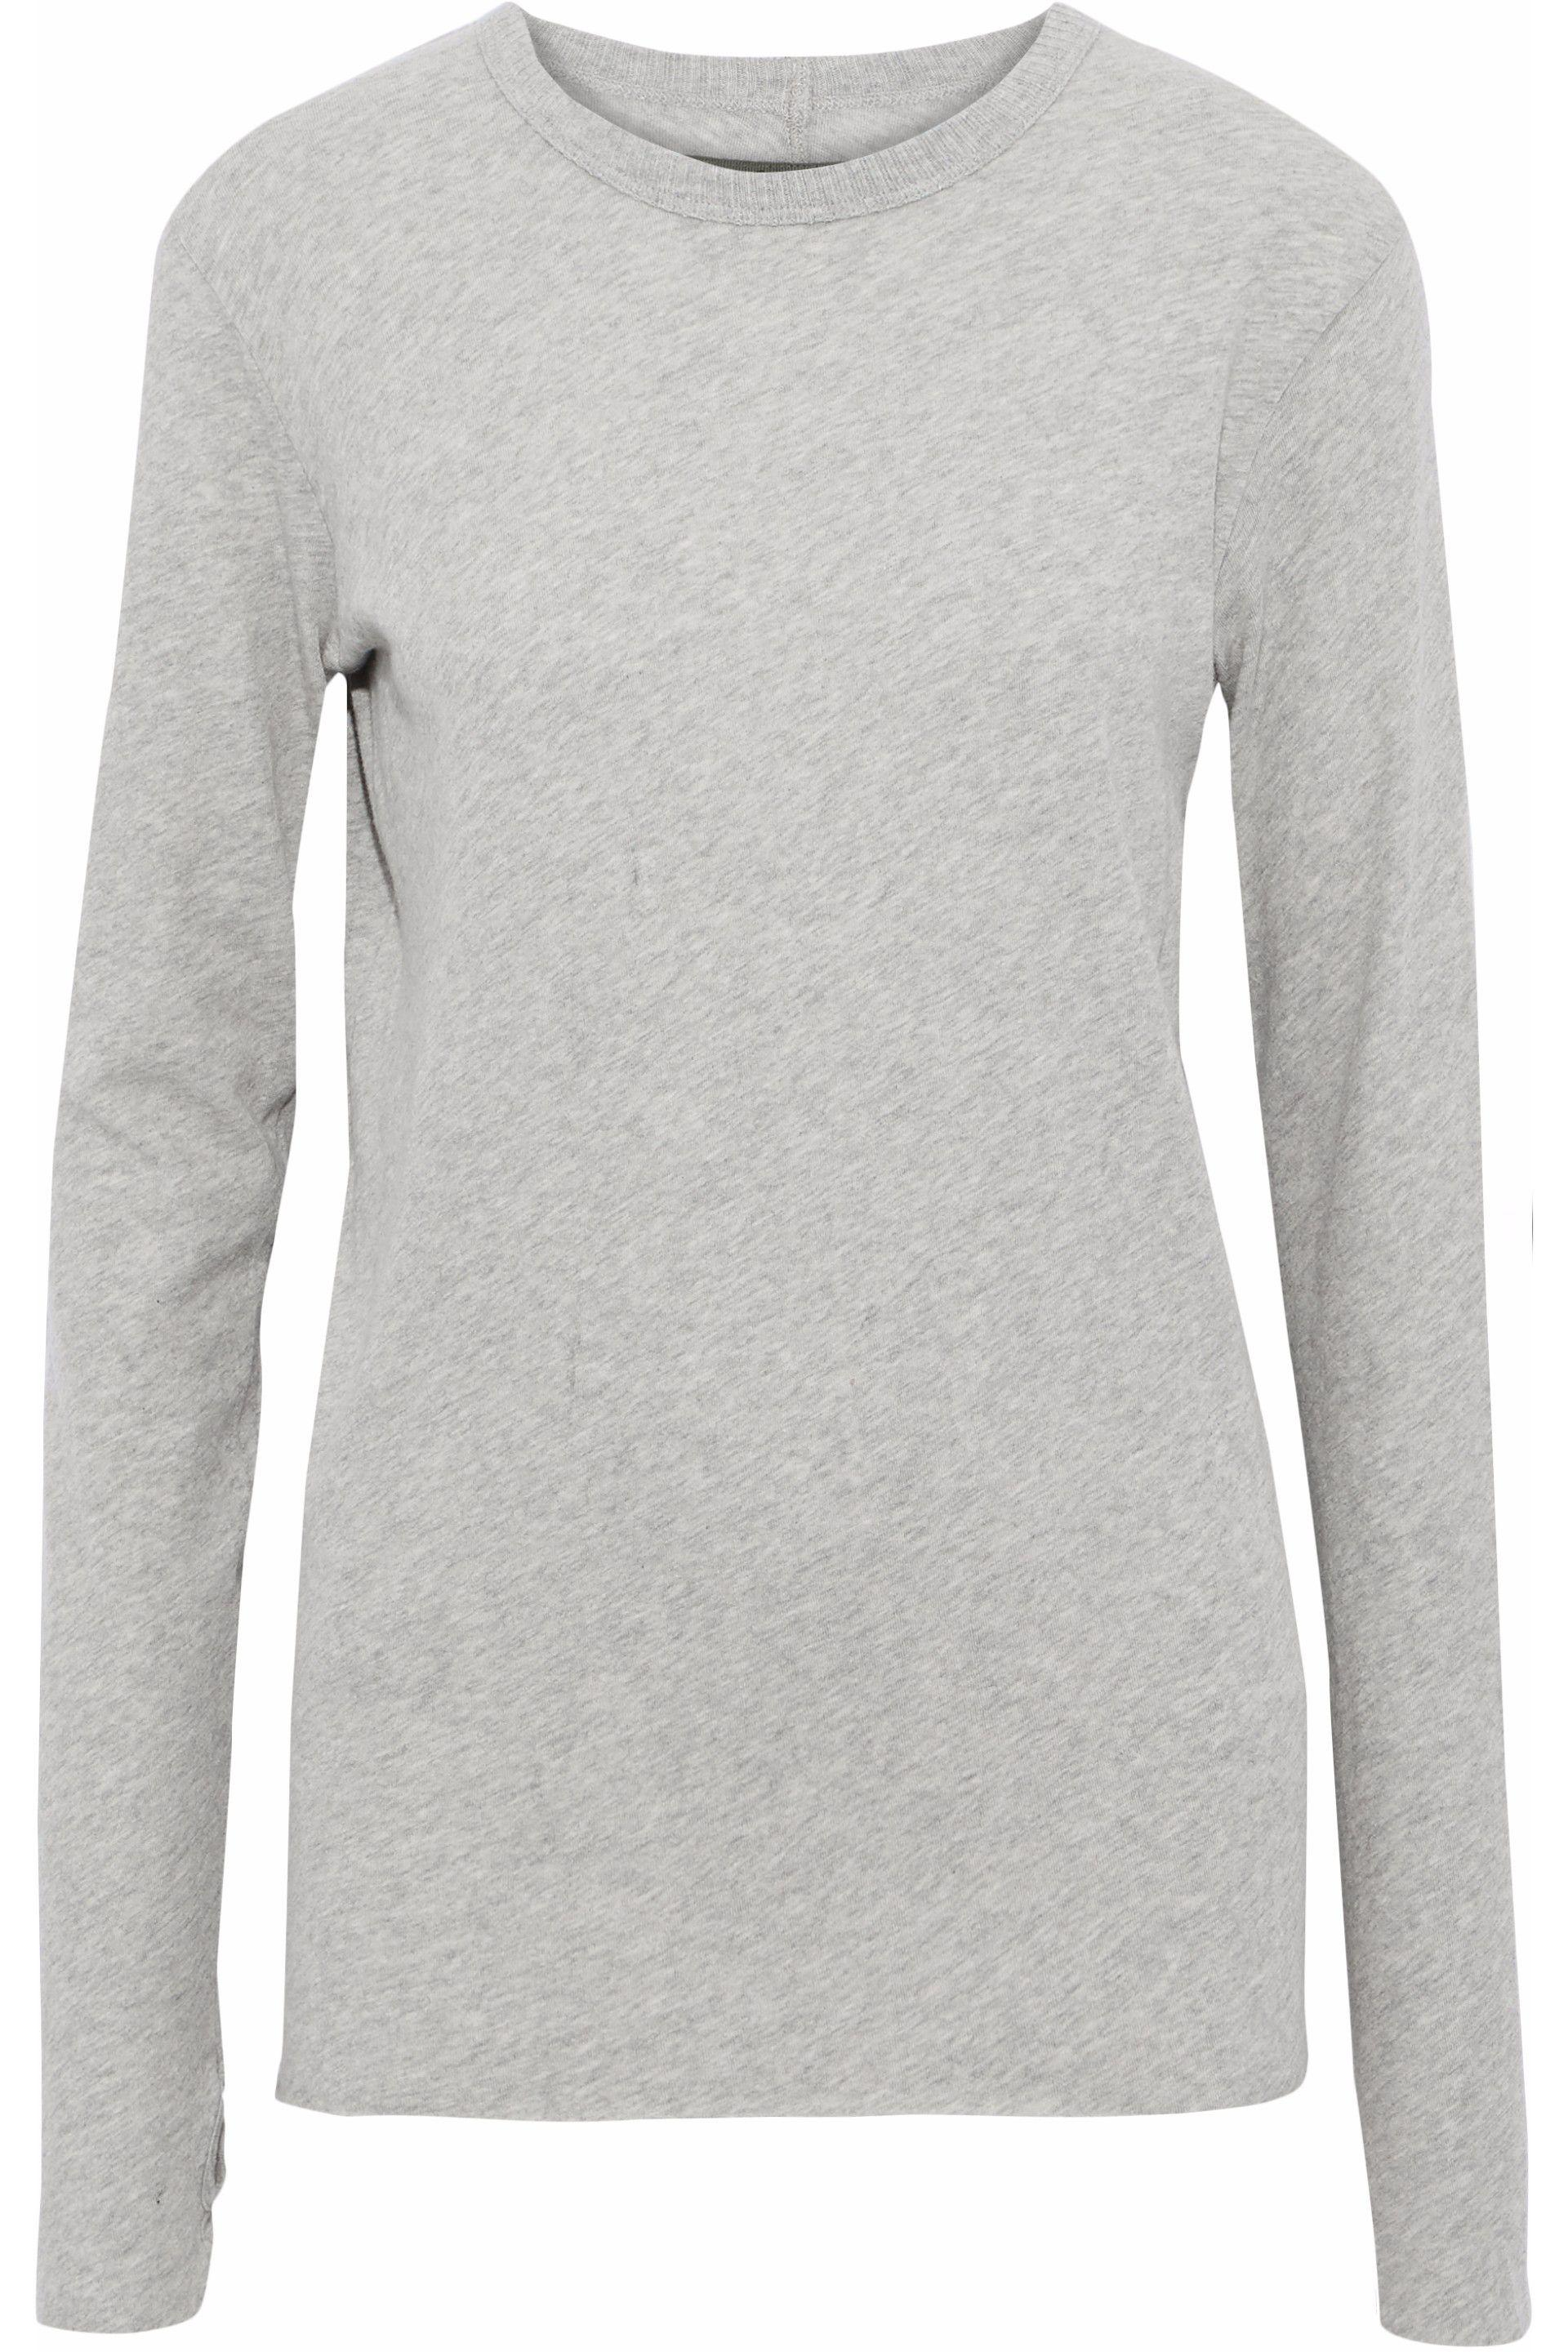 Enza Costa. Women's Gray Cotton And Cashmere-blend Top Light Grey